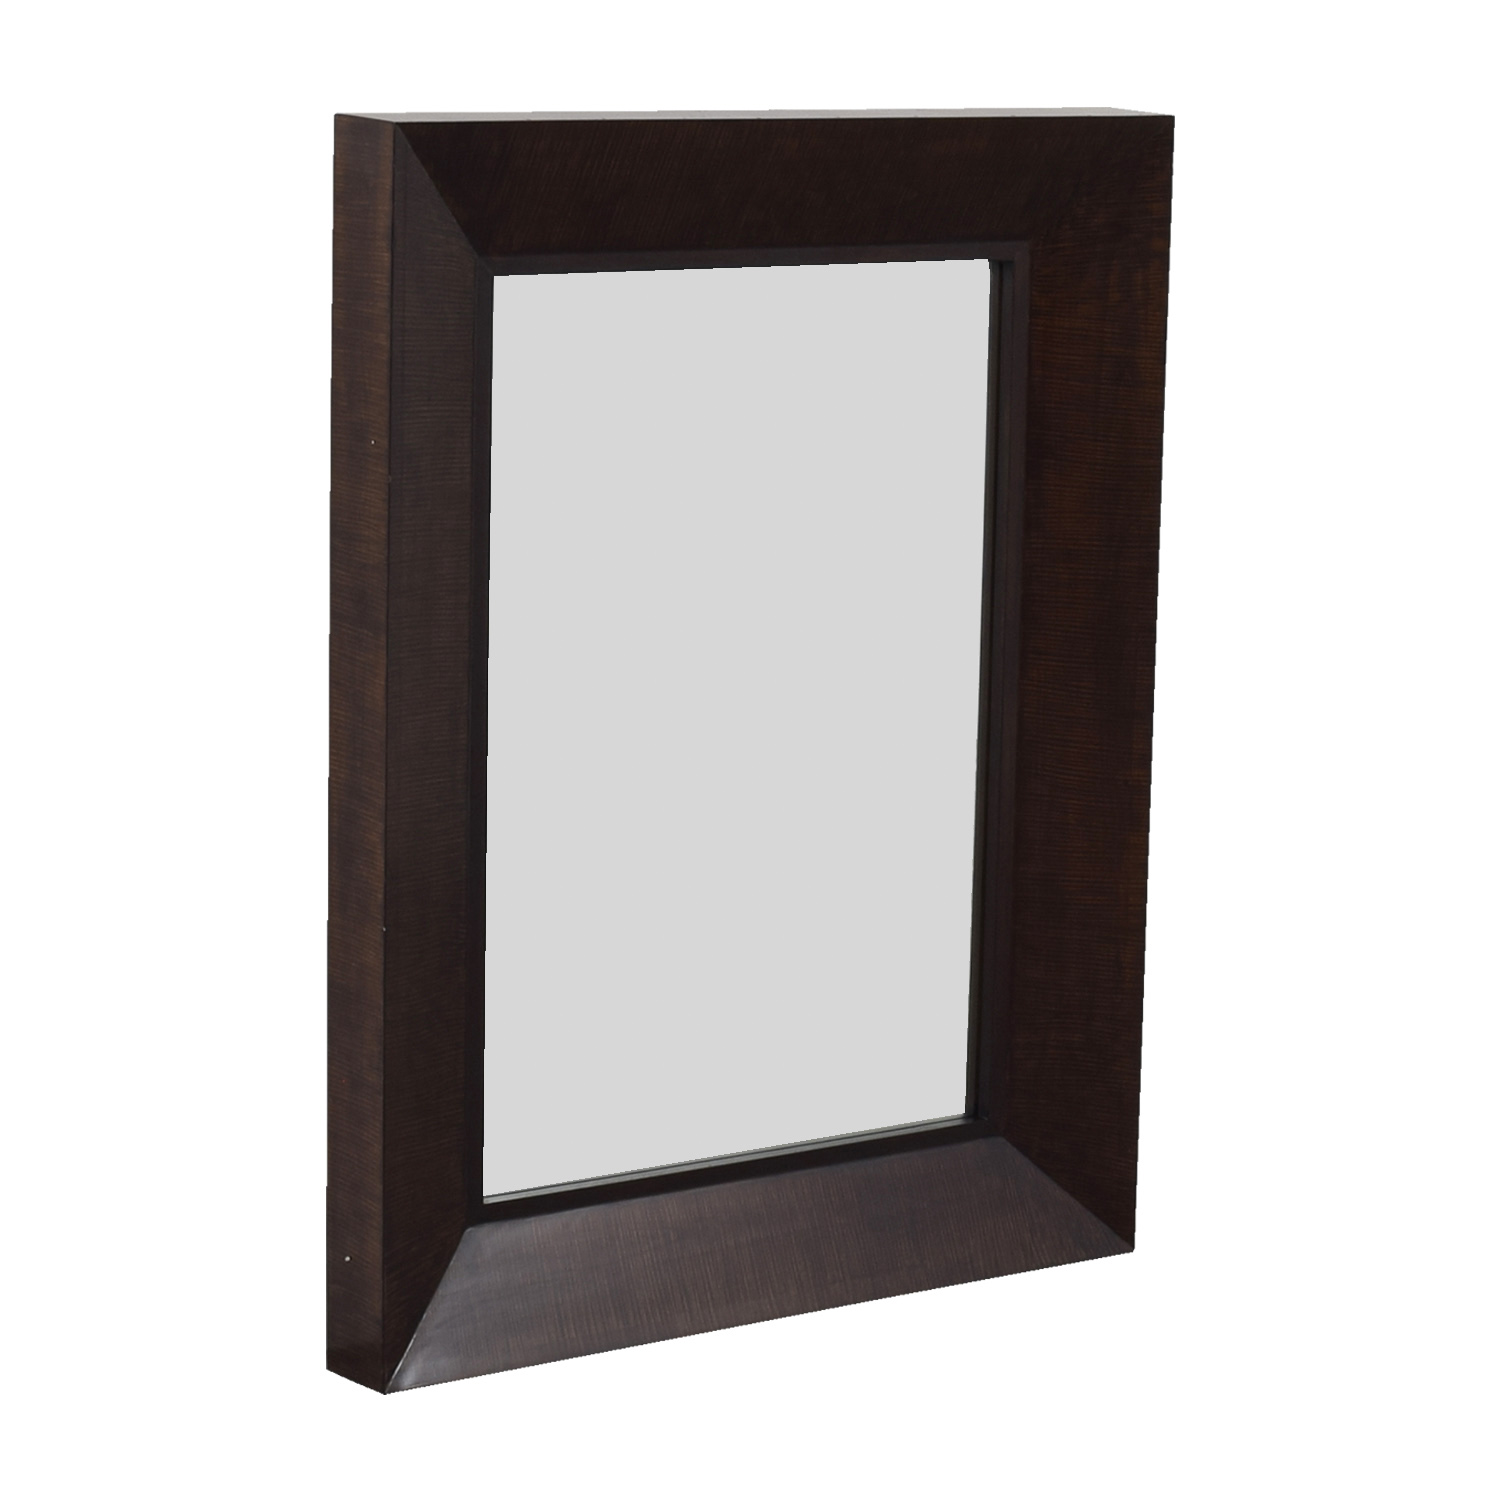 Kreiss Kreiss Wood Framed Mirror dimensions